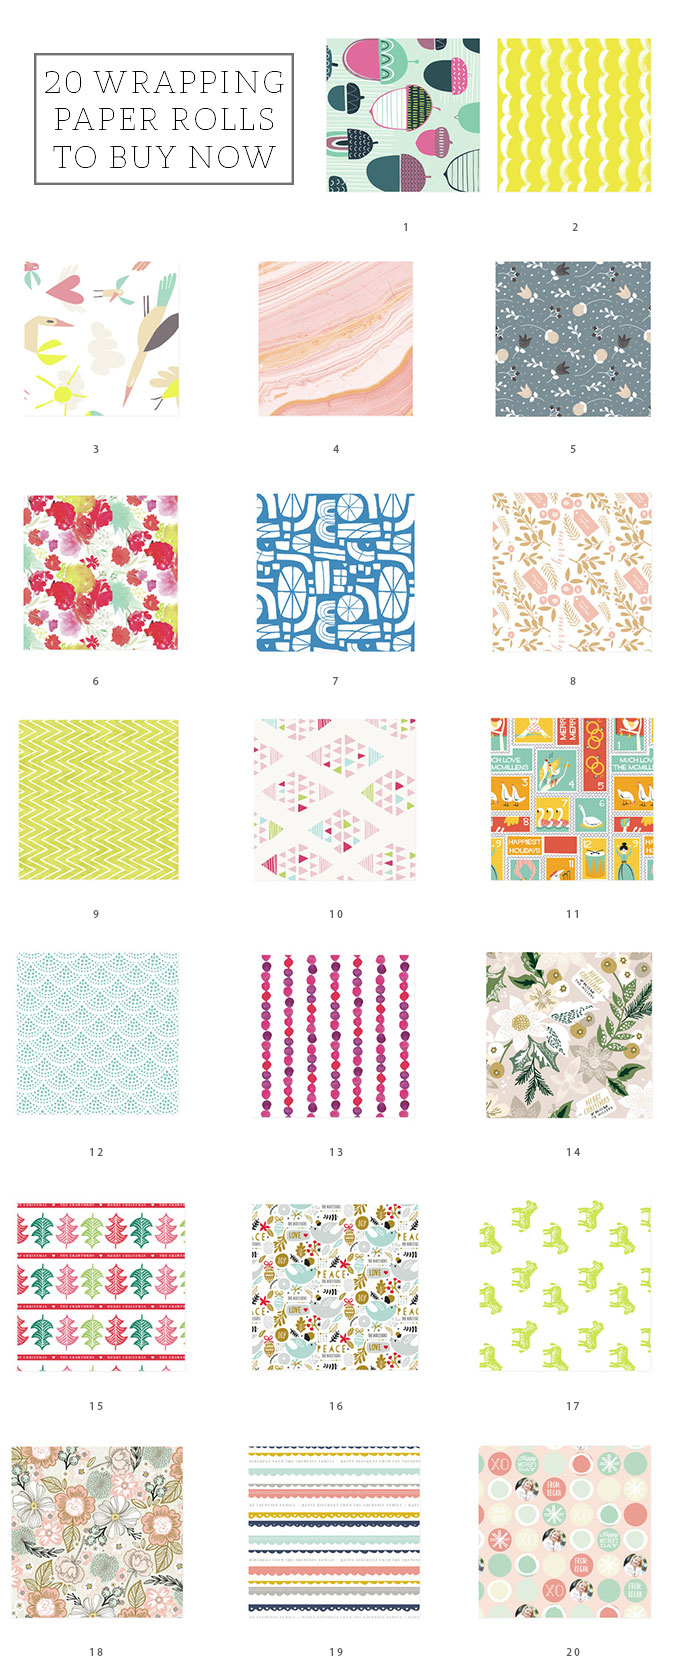 http://www.dreamgreendiy.com/wp-content/uploads/2016/08/16-36562-post/20-Wrapping-Paper-Rolls-To-Buy-Now.jpg